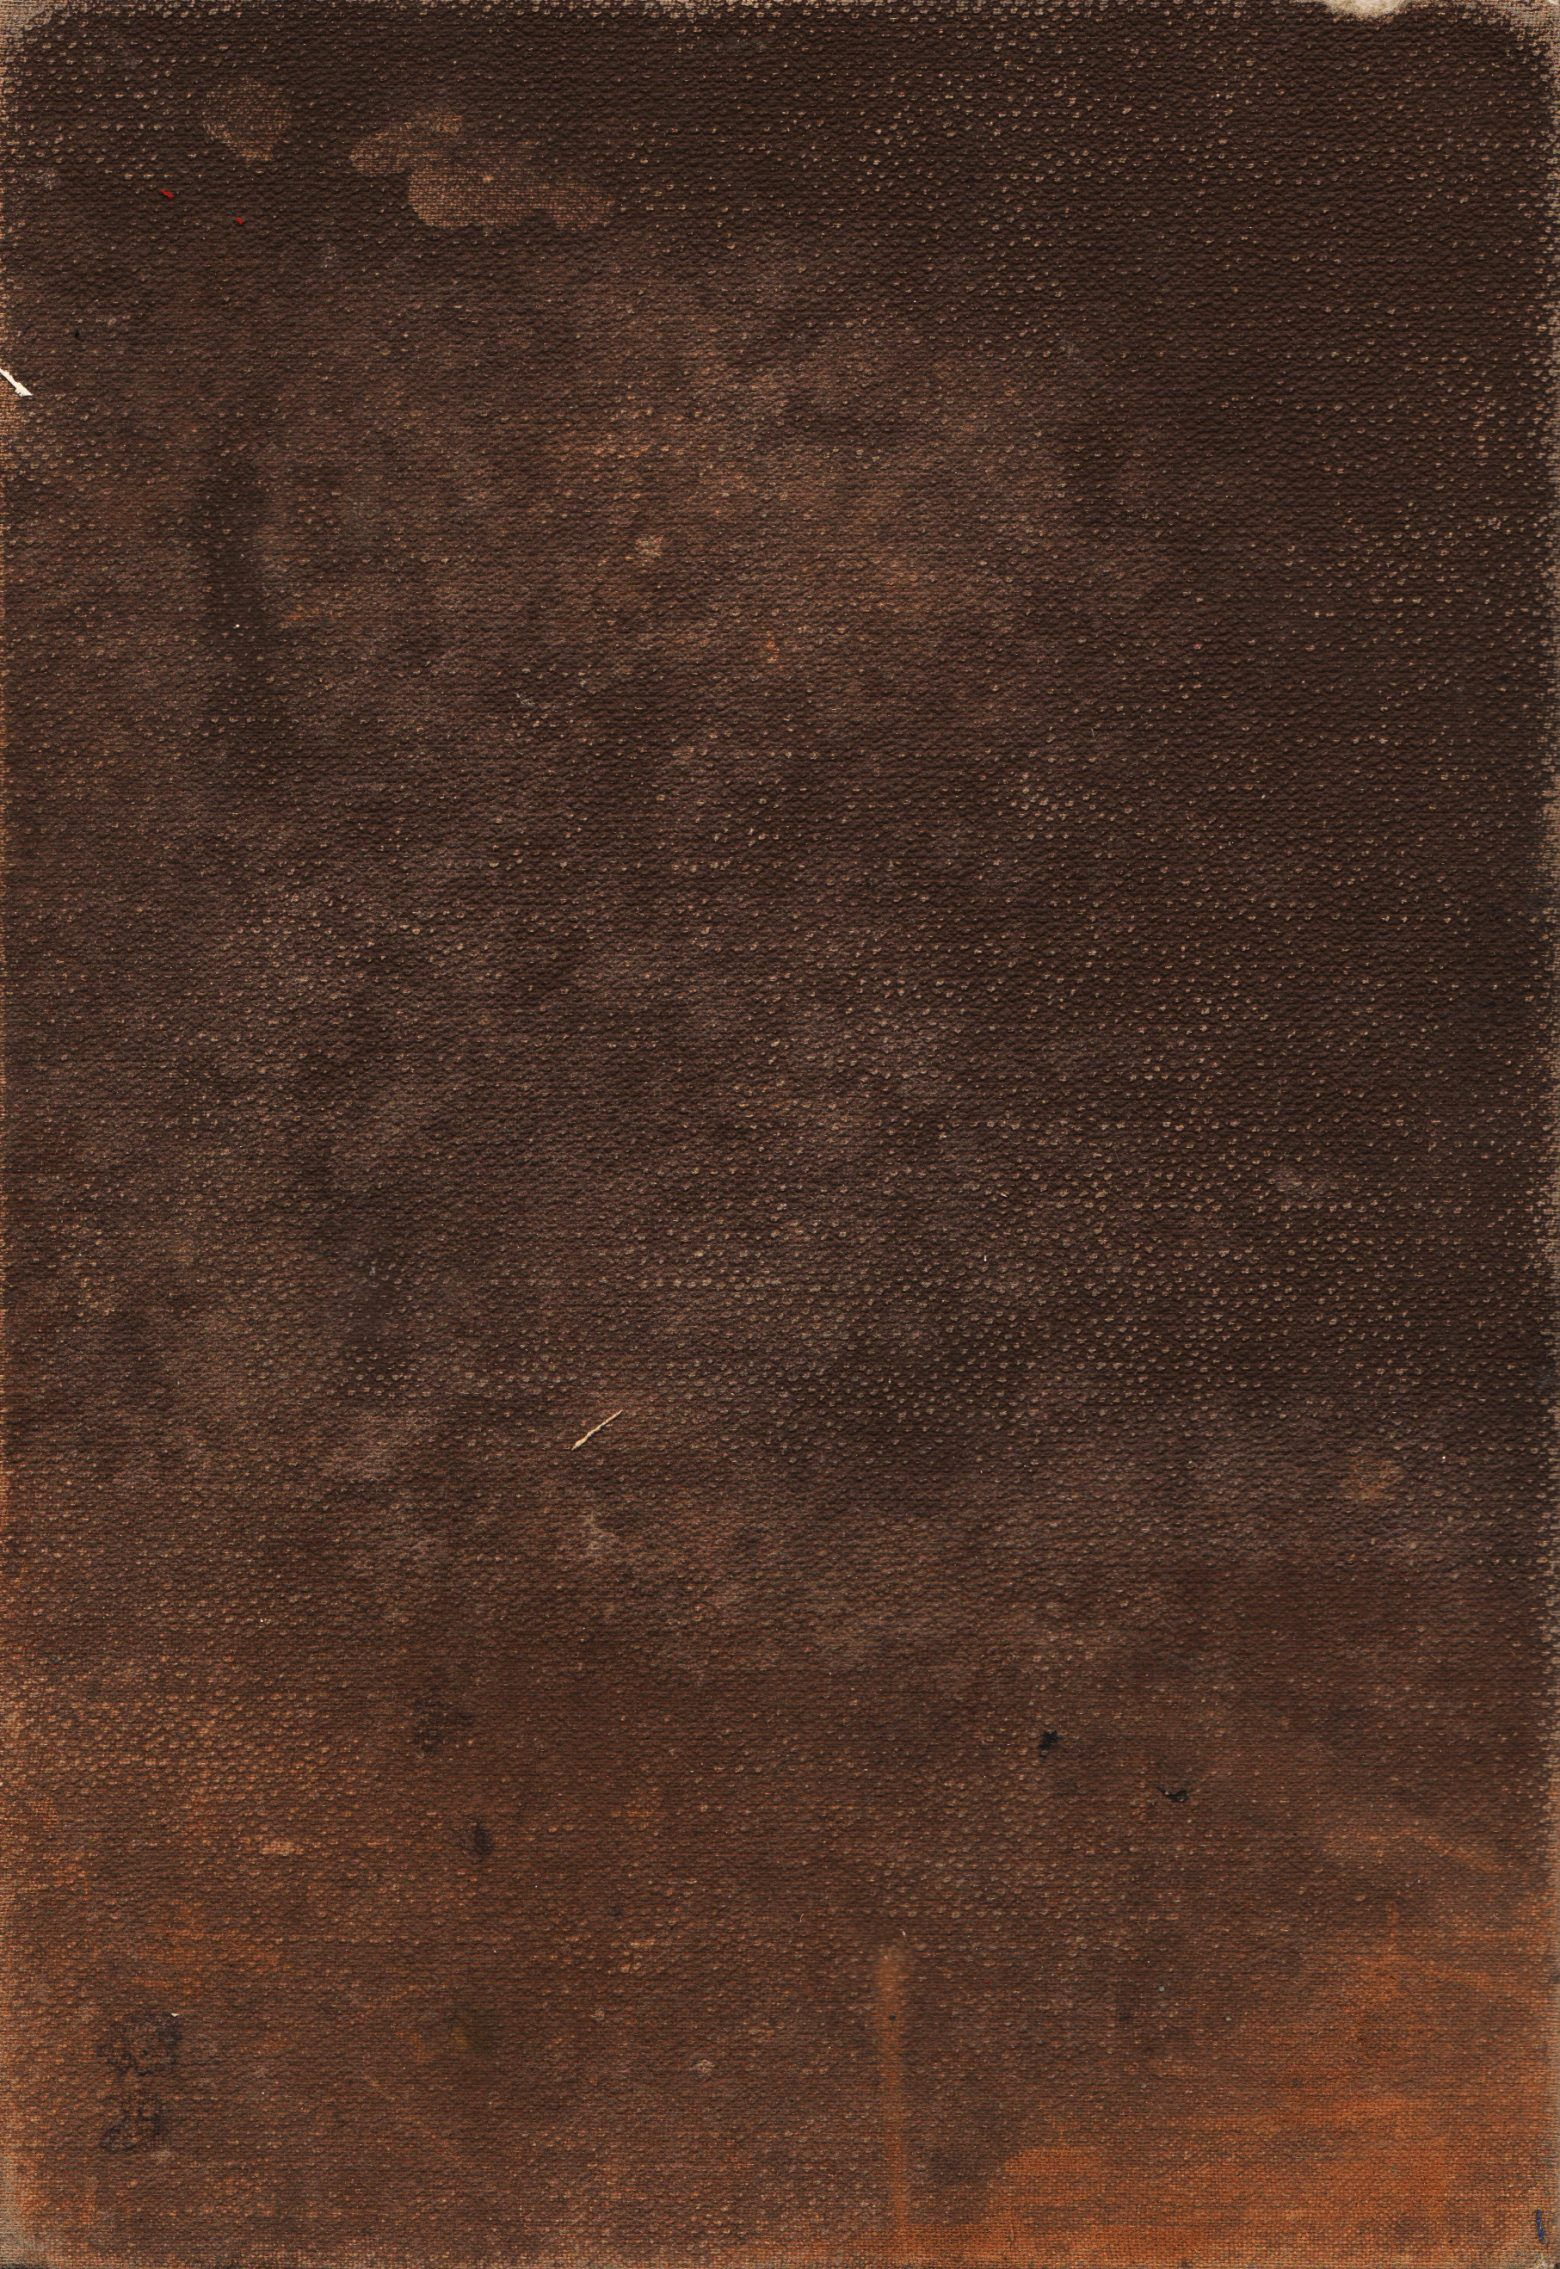 Free 20th Century Deconstructed Vintage Book Texture Texture L T Book Texture Photo Texture Texture